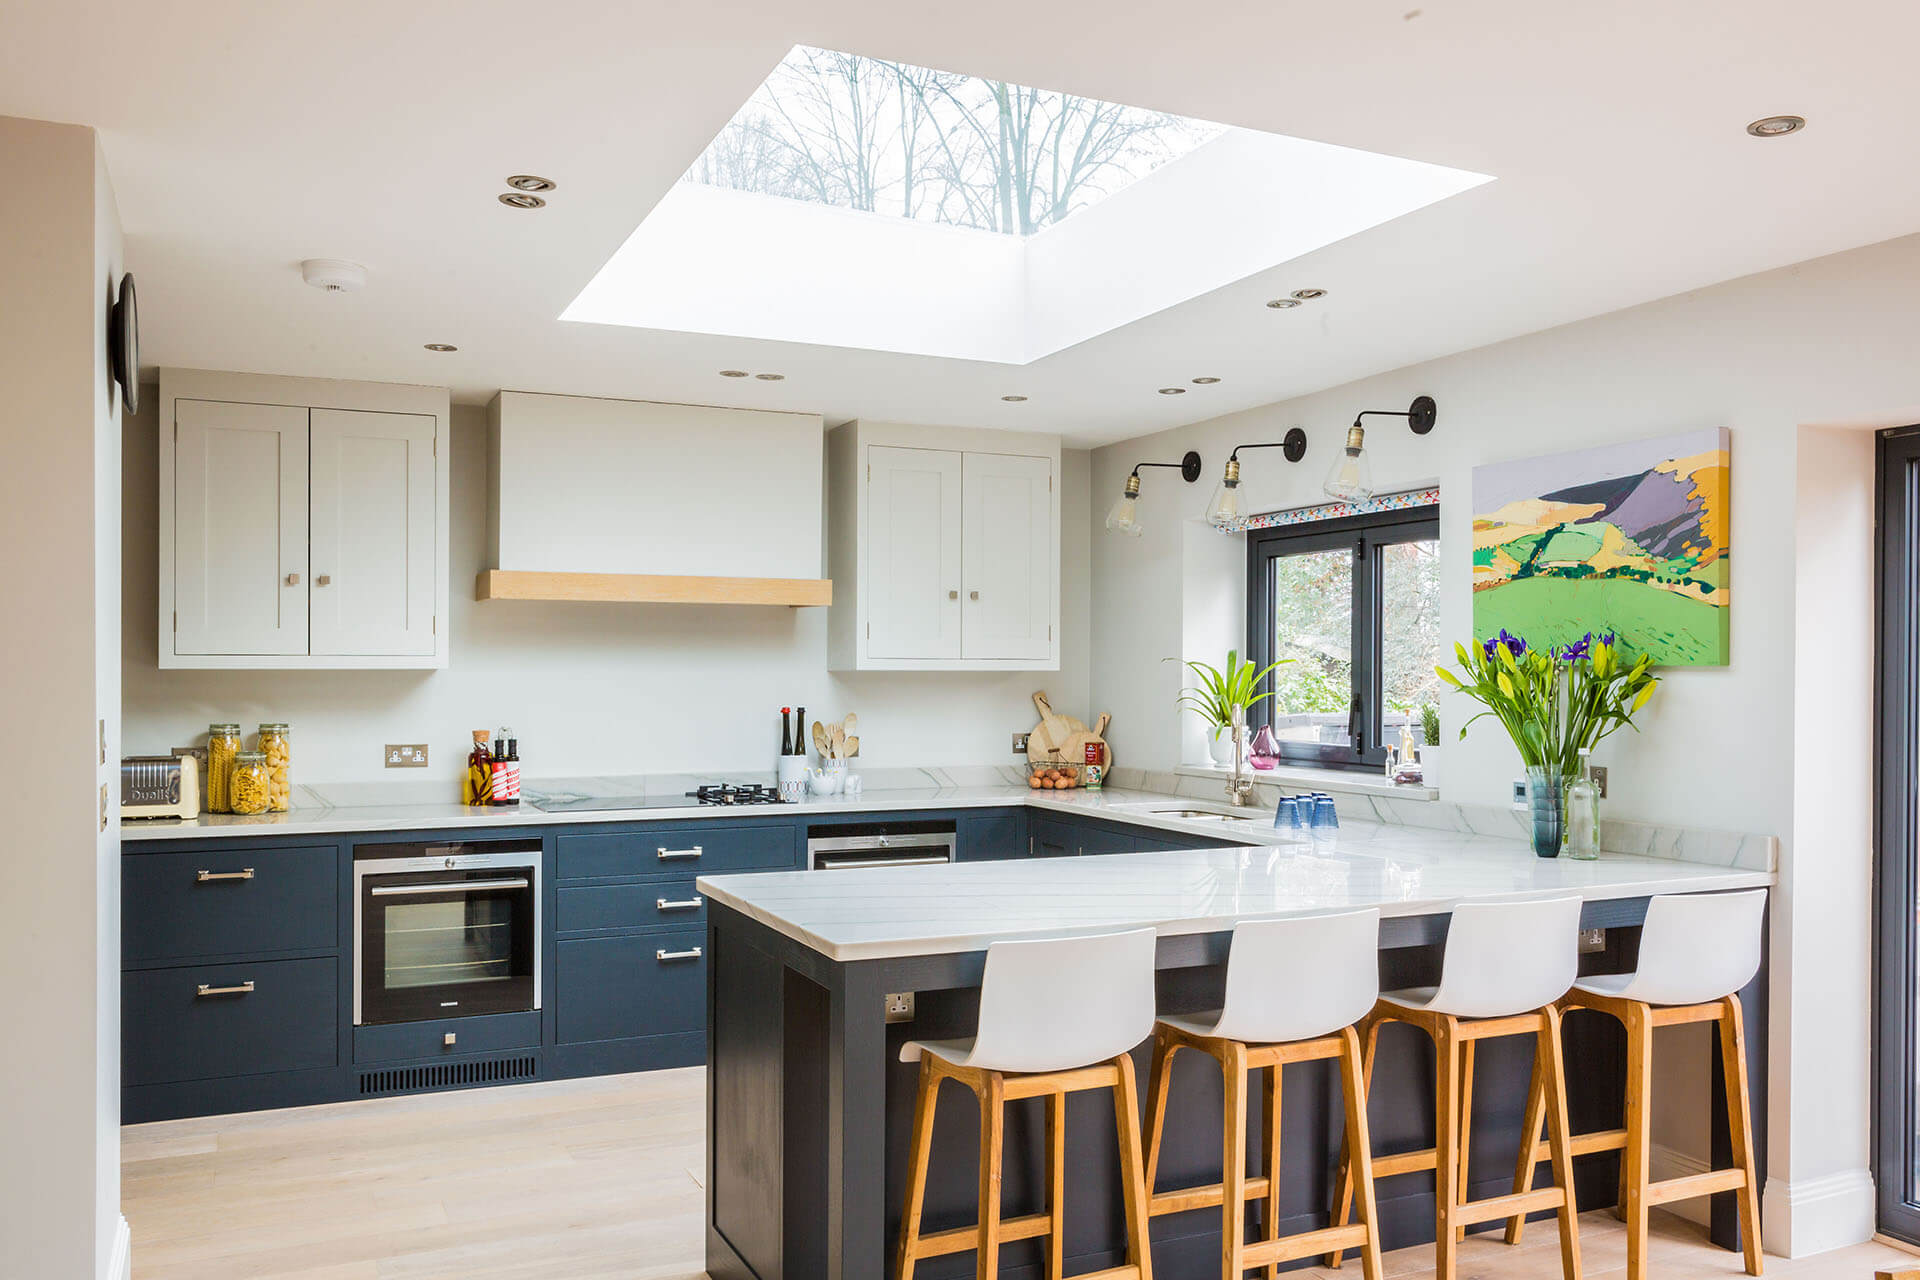 Light and airy london Shaker kitchen with large peninsular and white quartz worktop